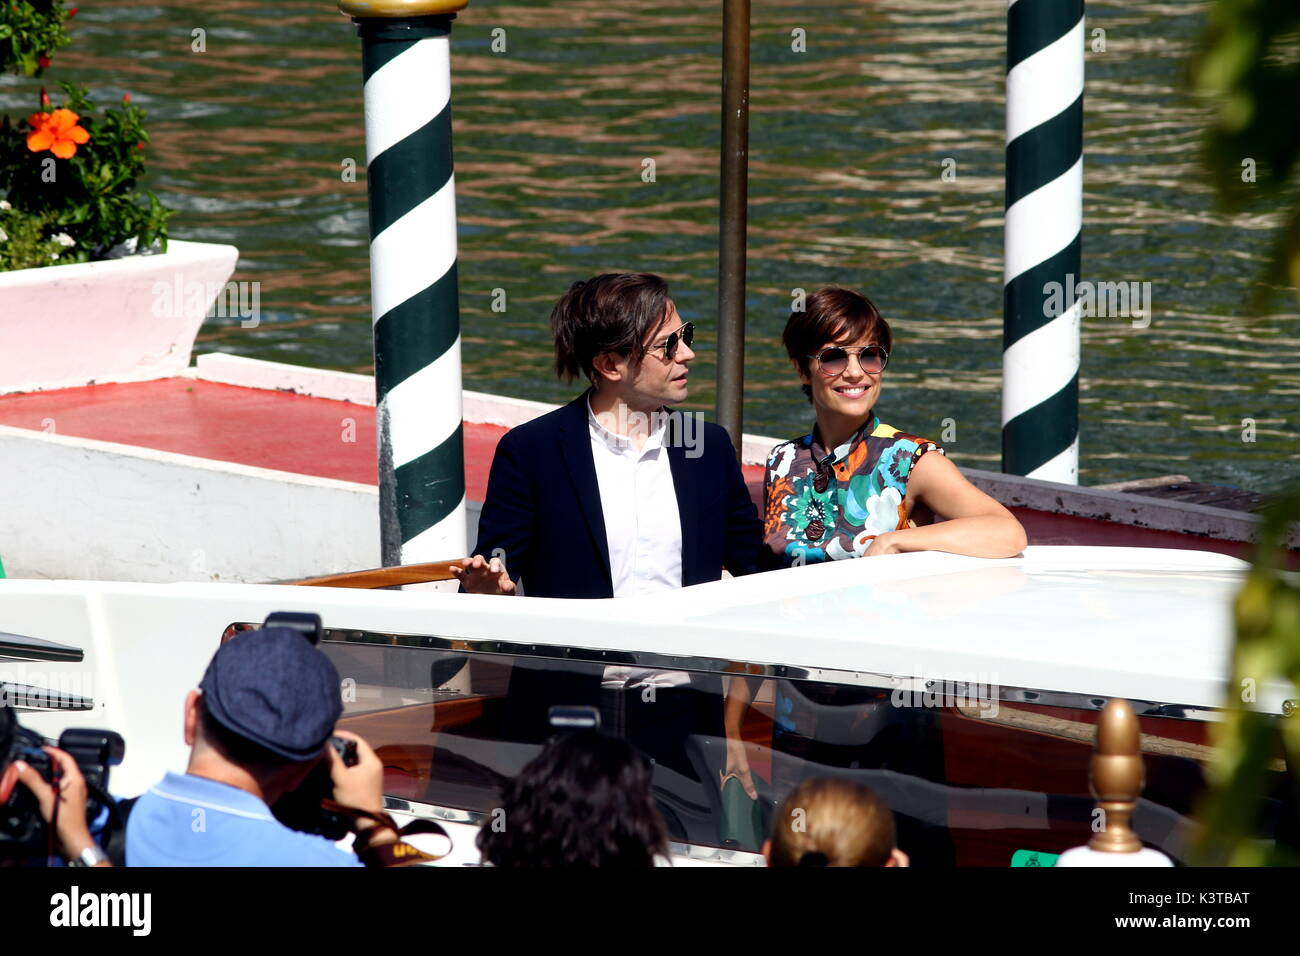 Venice, Italy. 3rd Sep, 2017. Sebastiano Riso (L) and Micaela Ramazzotti (R) is seen during the 74th Venice International Film Festival at Lido of Venice on 3th September, 2017. Credit: Andrea Spinelli/Alamy Live News - Stock Image